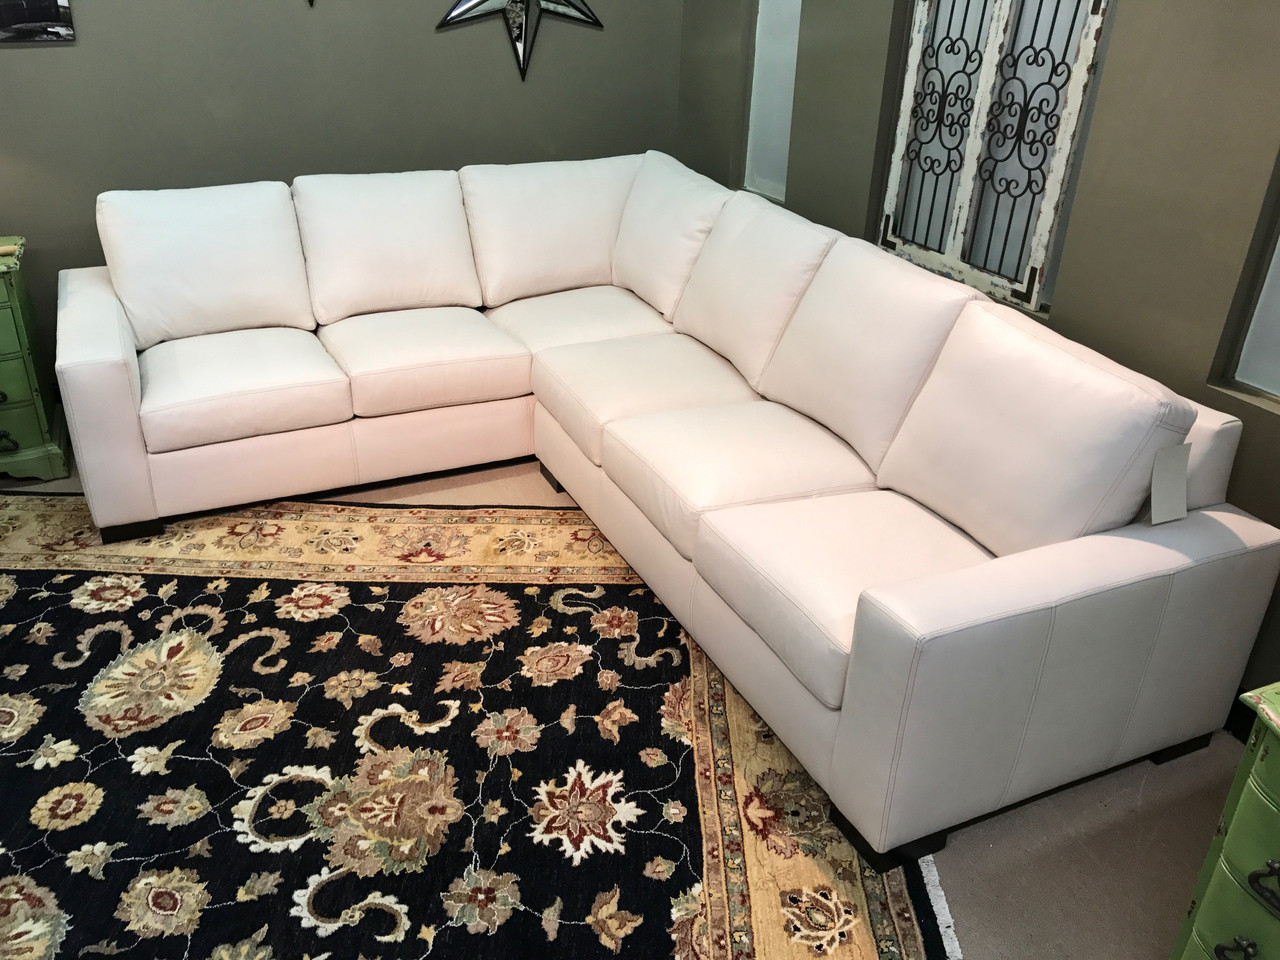 Wondrous American Heritage Designer Choice Sectional Save 25 Andrewgaddart Wooden Chair Designs For Living Room Andrewgaddartcom